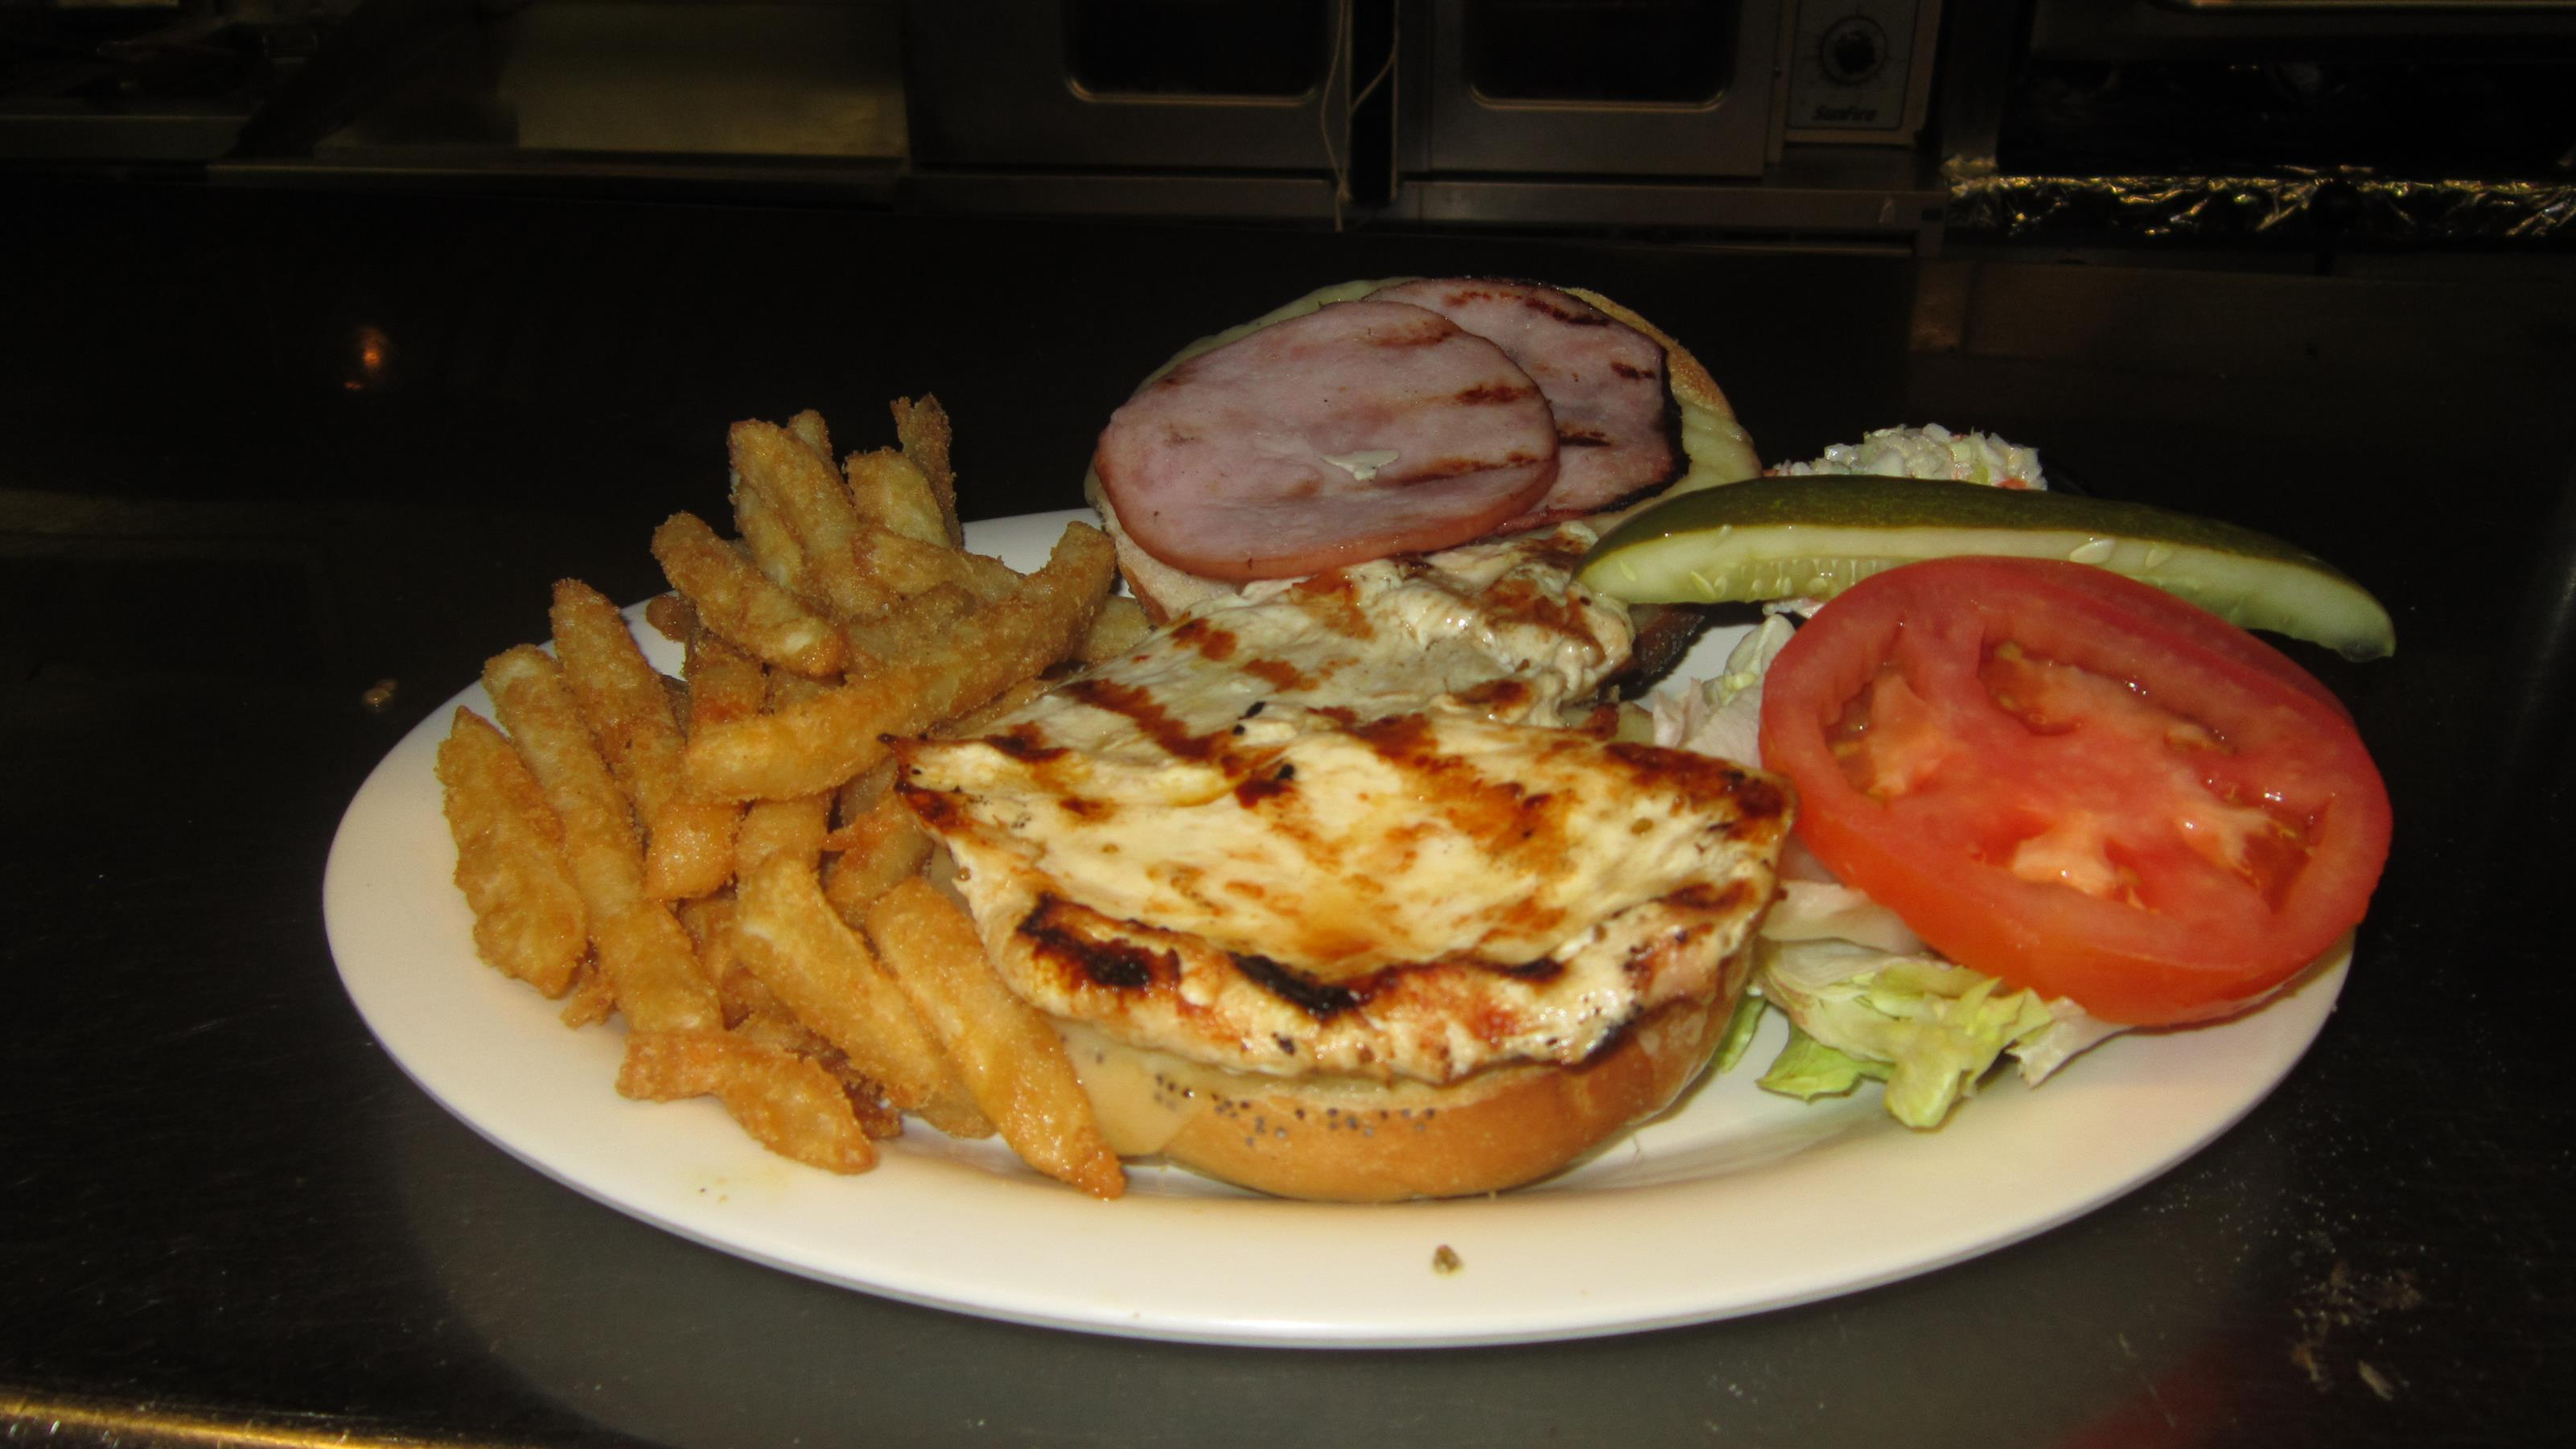 baked ham sandwich with lettuce, tomato, a pickle and fries on the side